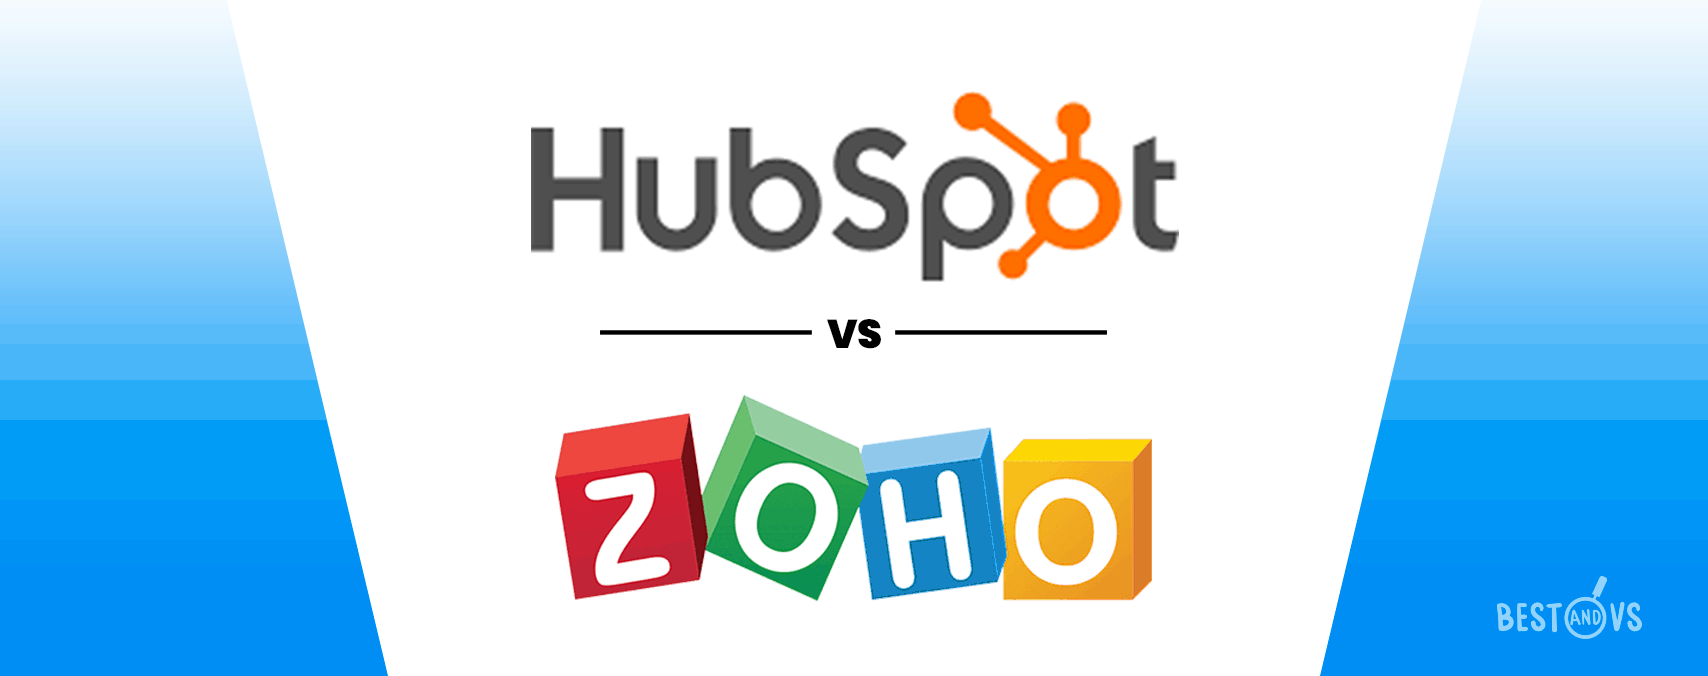 Hubspot Vs Zoho (2019) Features and Pricing